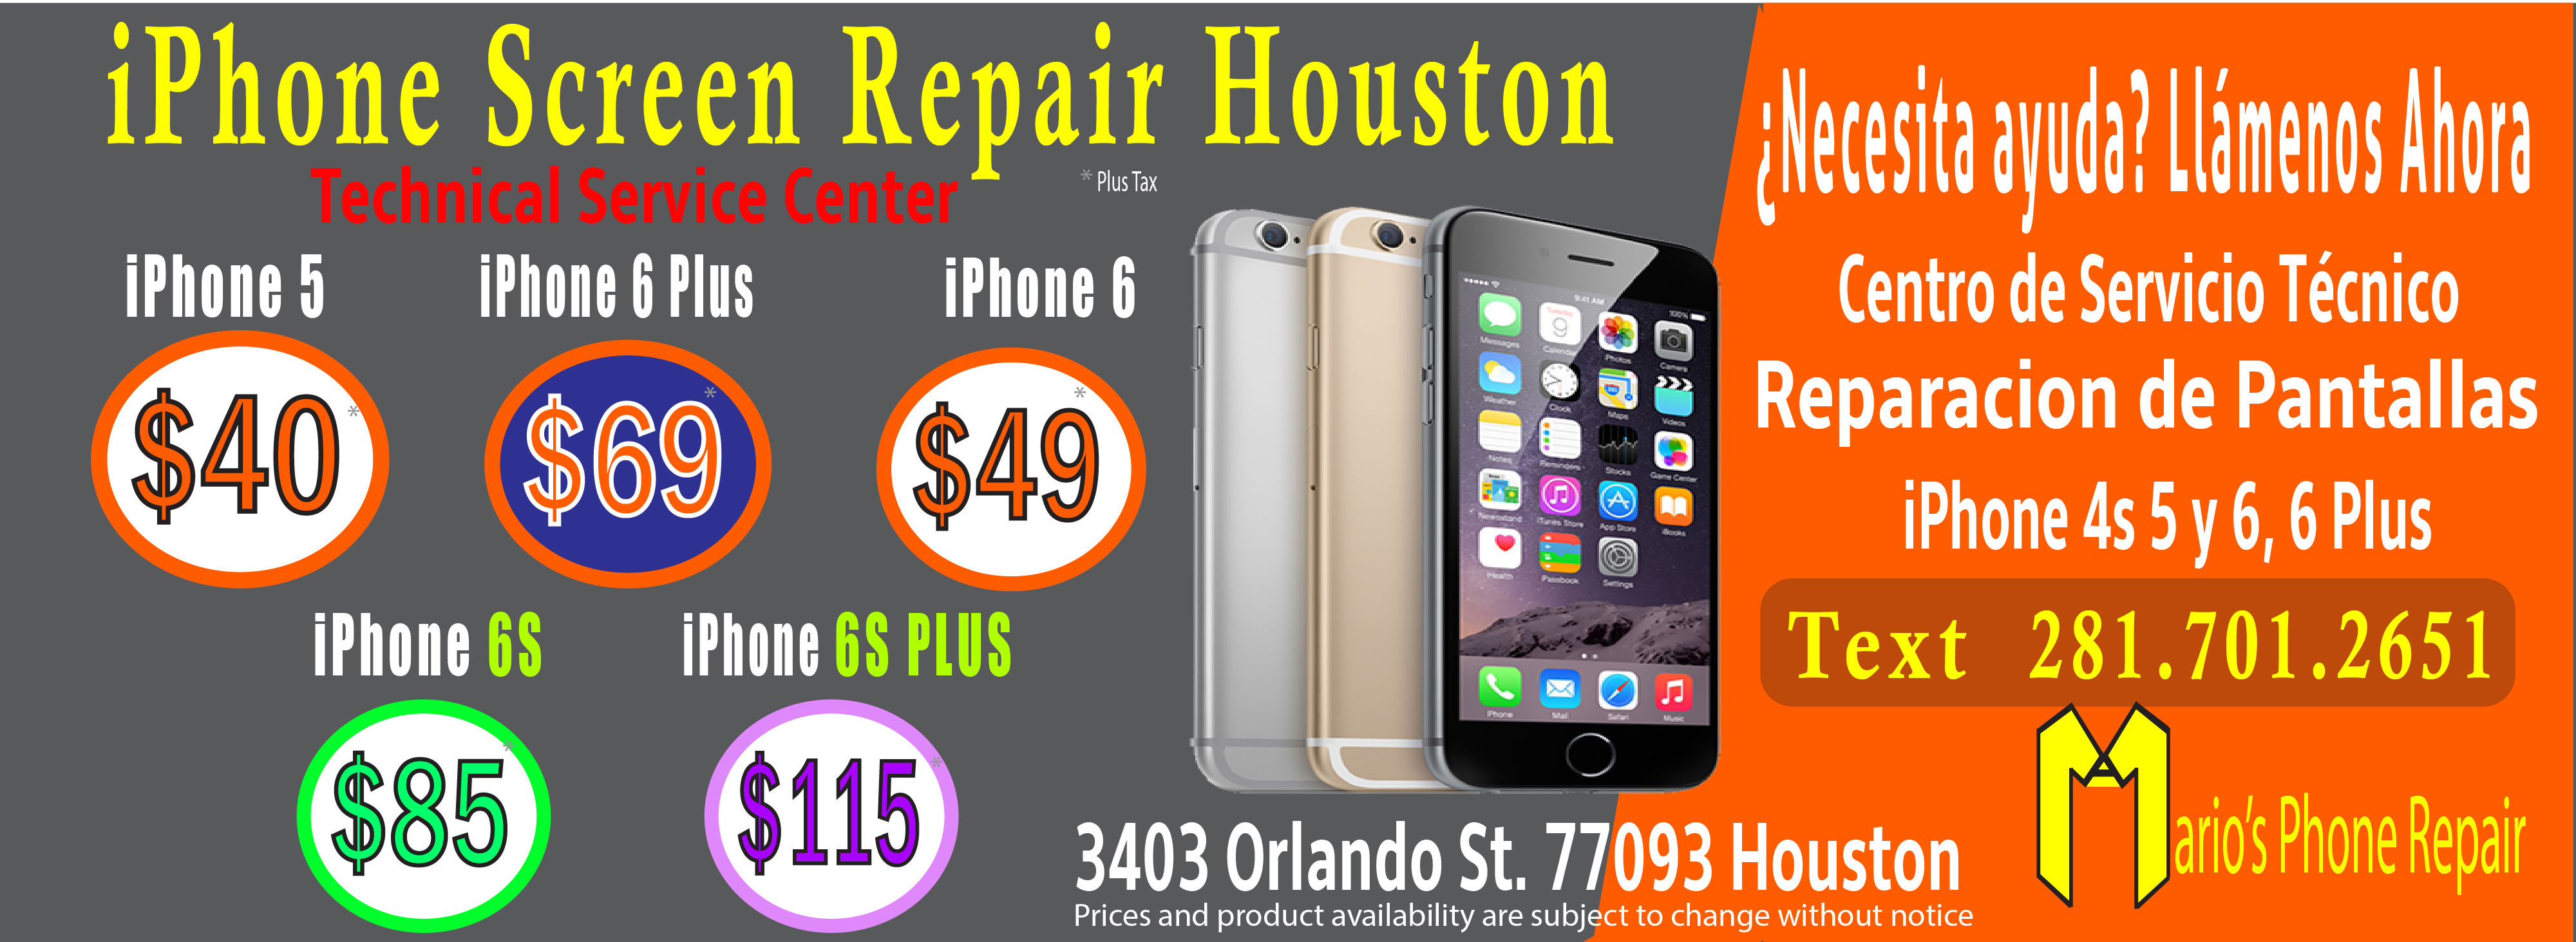 iphone screen repair houston 2017